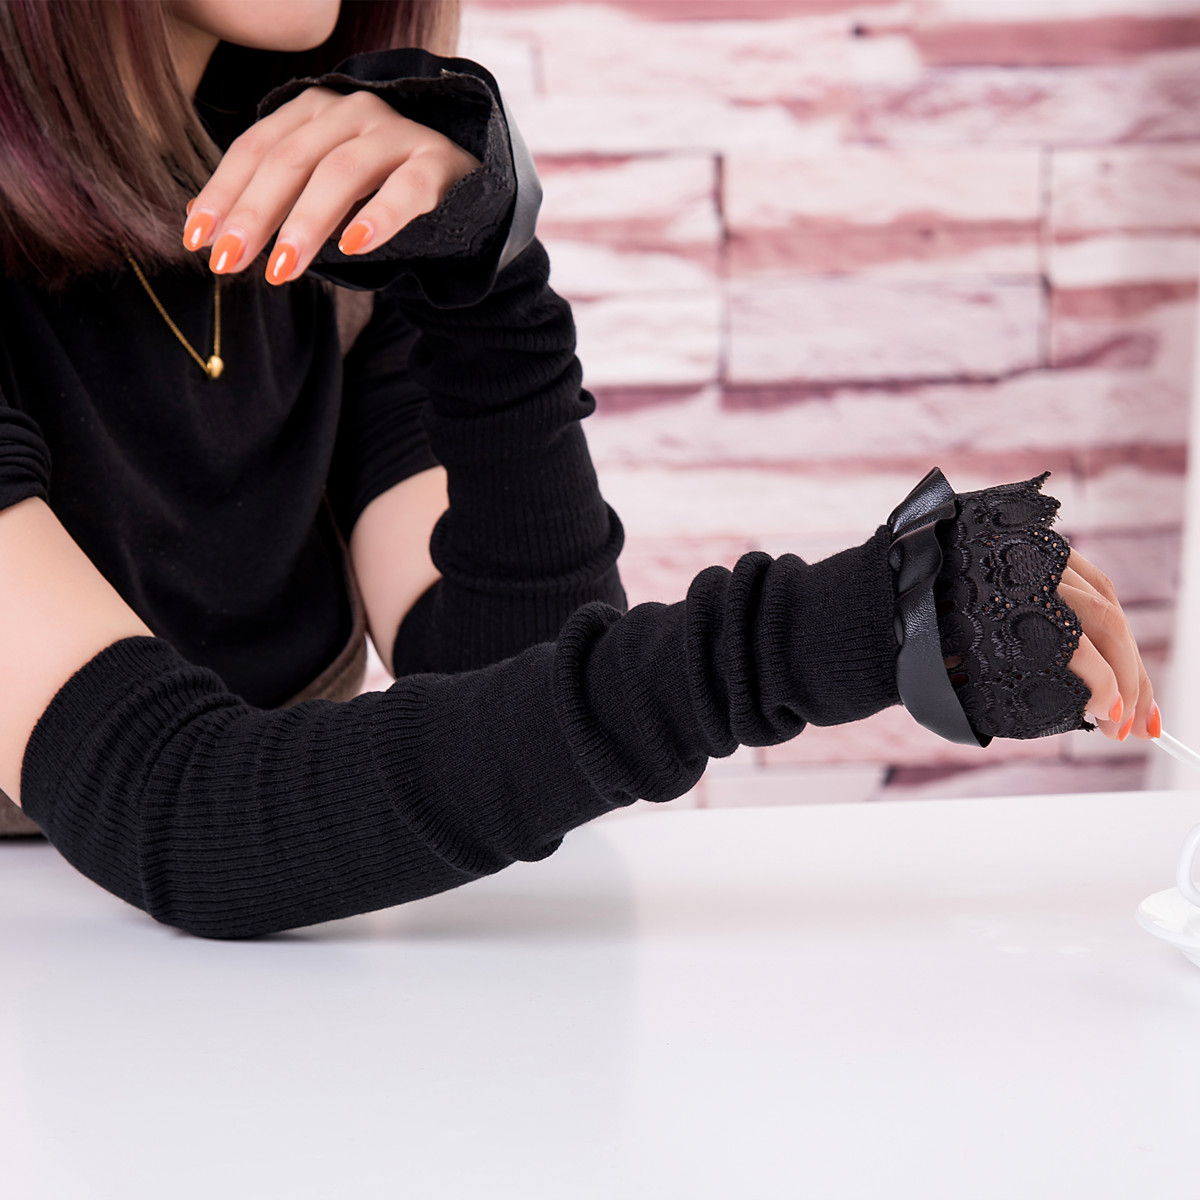 Autumn and winter long cashmere half finger gloves leather bowknot thickened warm arm sleeve sleeve women wool false sleeve